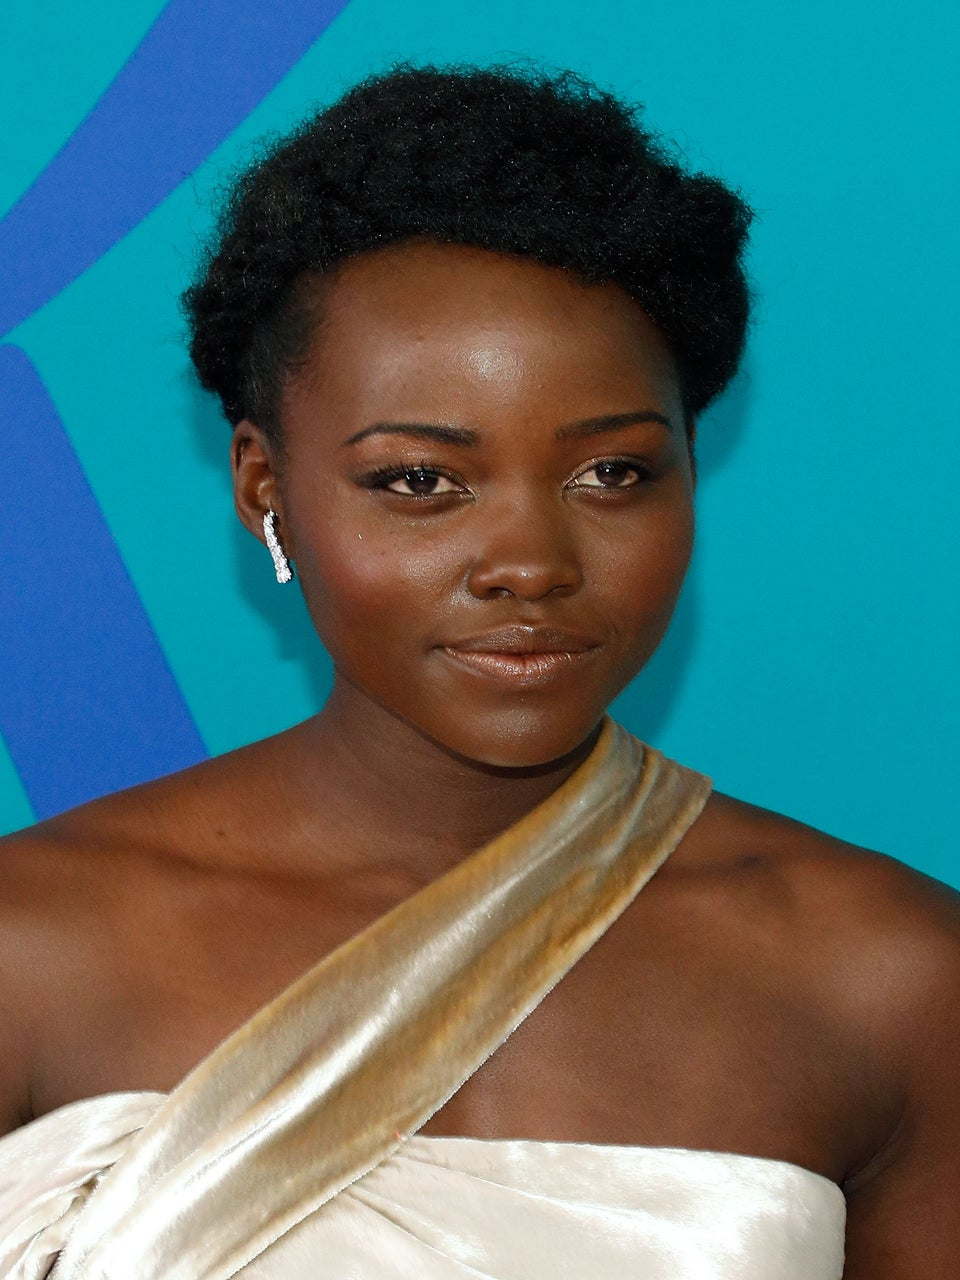 Pre-Sale For 'Black Panther' Sold Out So Fast That Even Lupita Nyong'o Couldn't Get Tickets